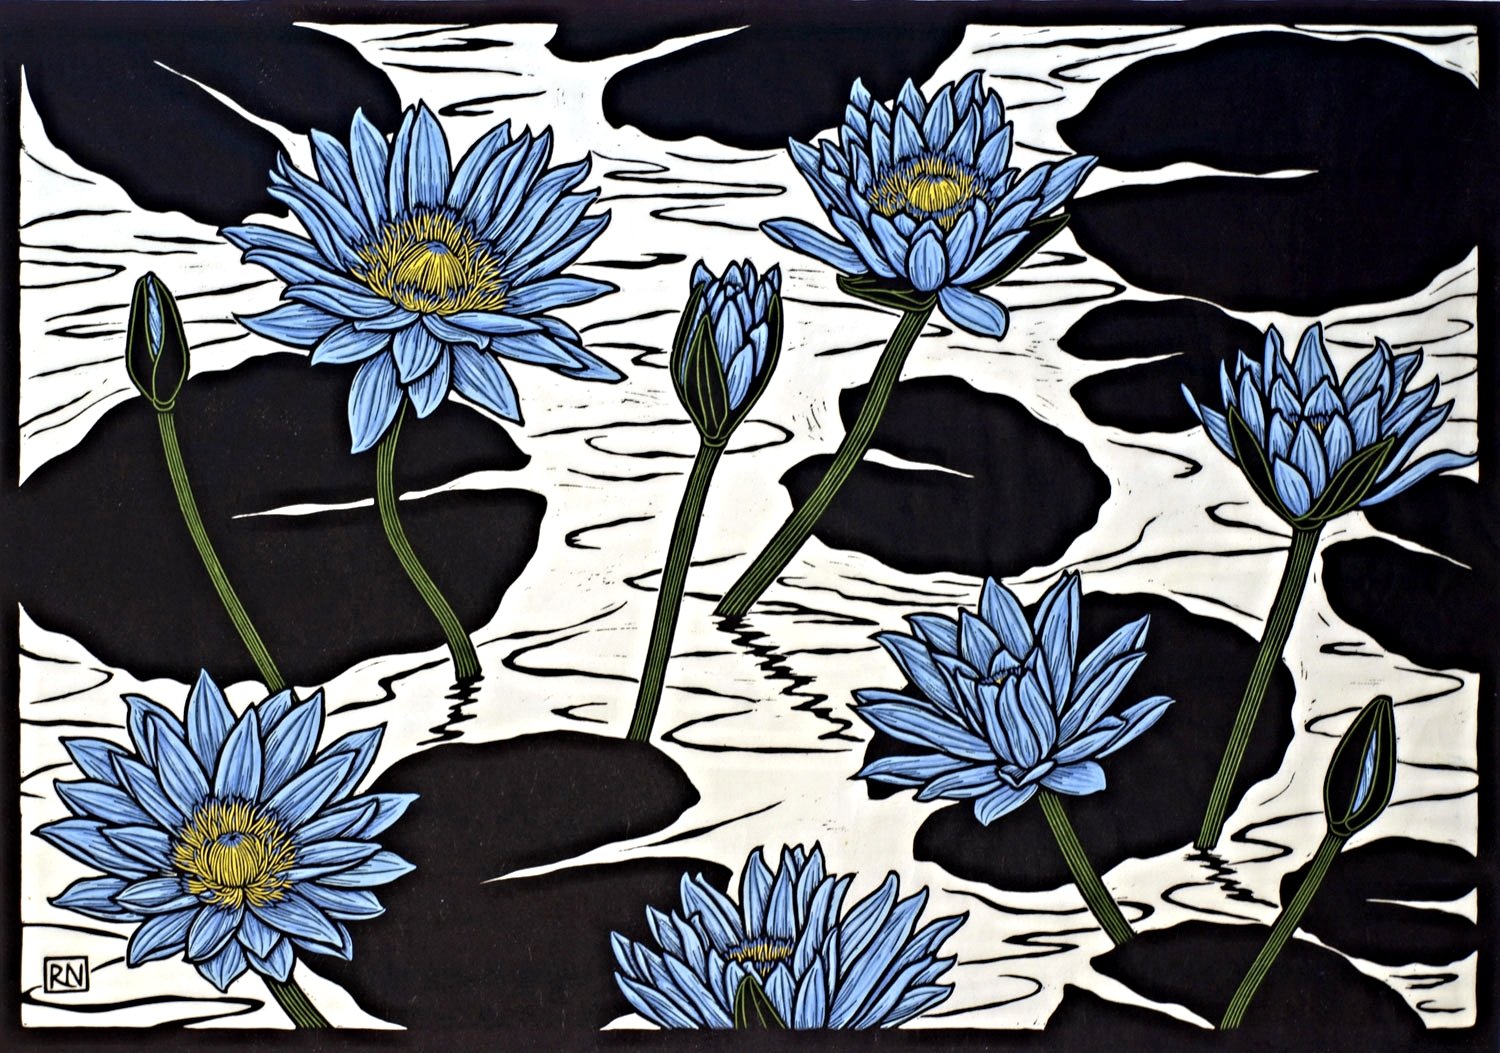 LILY POND  51.5 X 74 CM EDITION OF 50  HAND COLOURED LINOCUT ON HANDMADE JAPANESE PAPER  $1,550